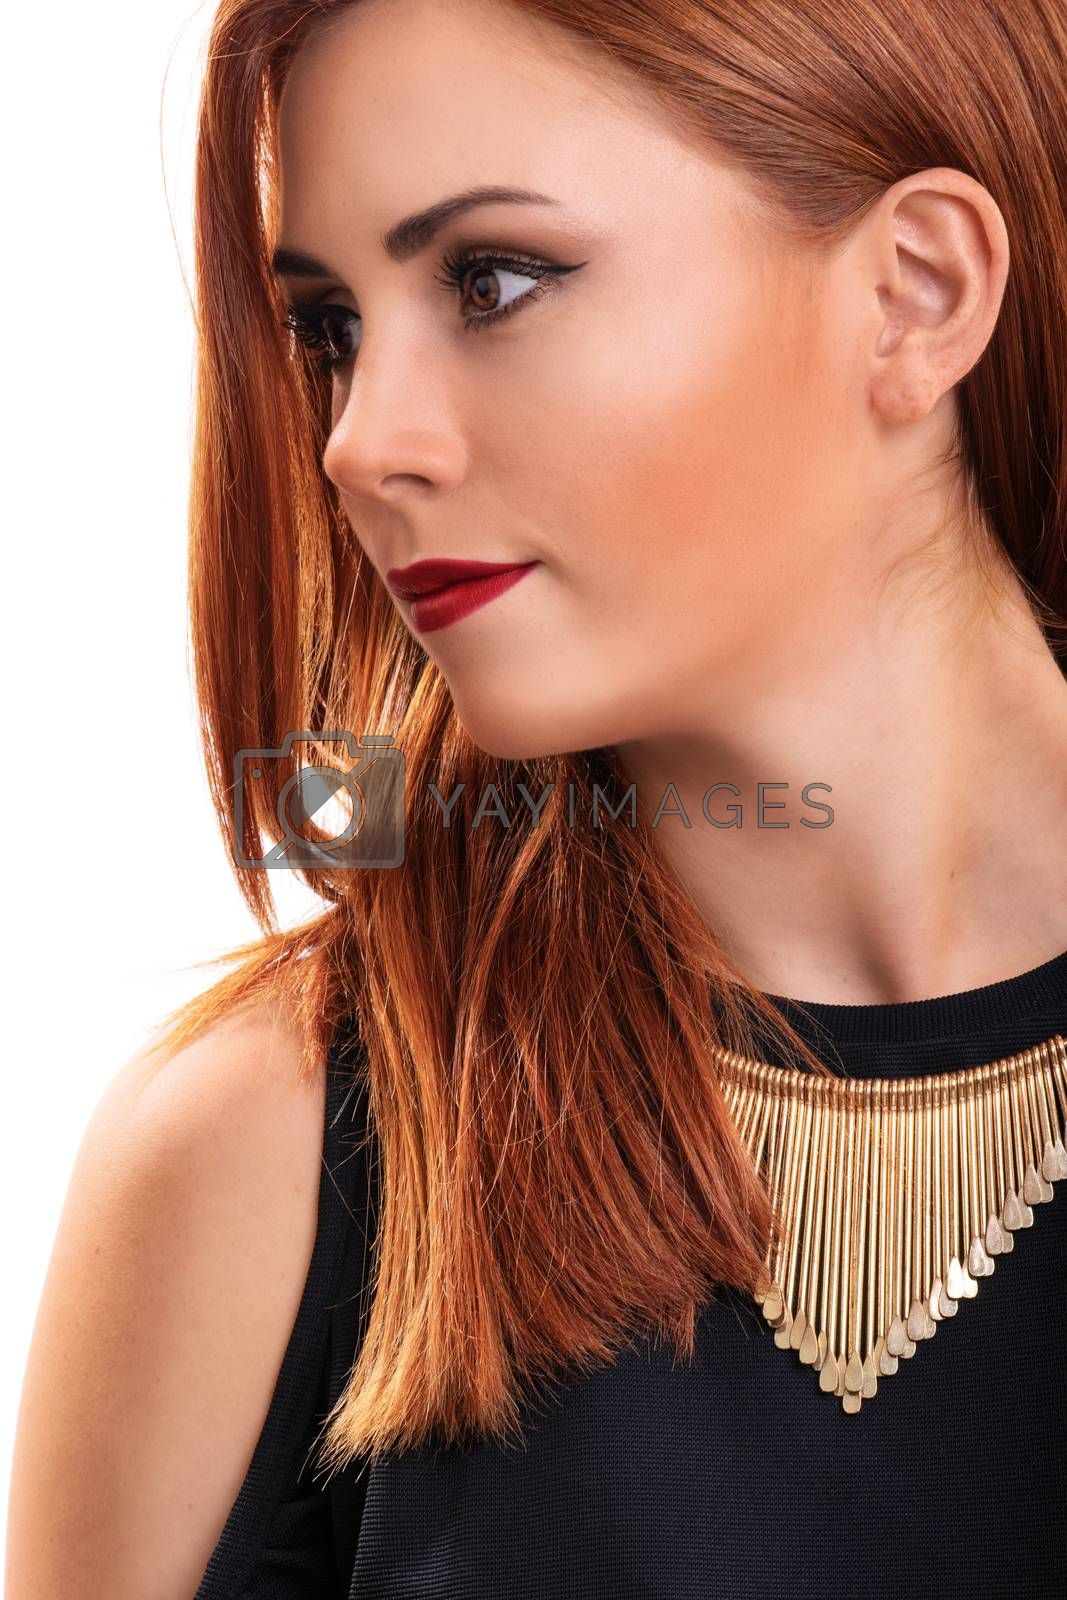 Profile shot of a beautiful, attractive redheaded young woman with clean make up, stylish black blouse and modern necklace, isolated on white background. Fashion and beauty concept.